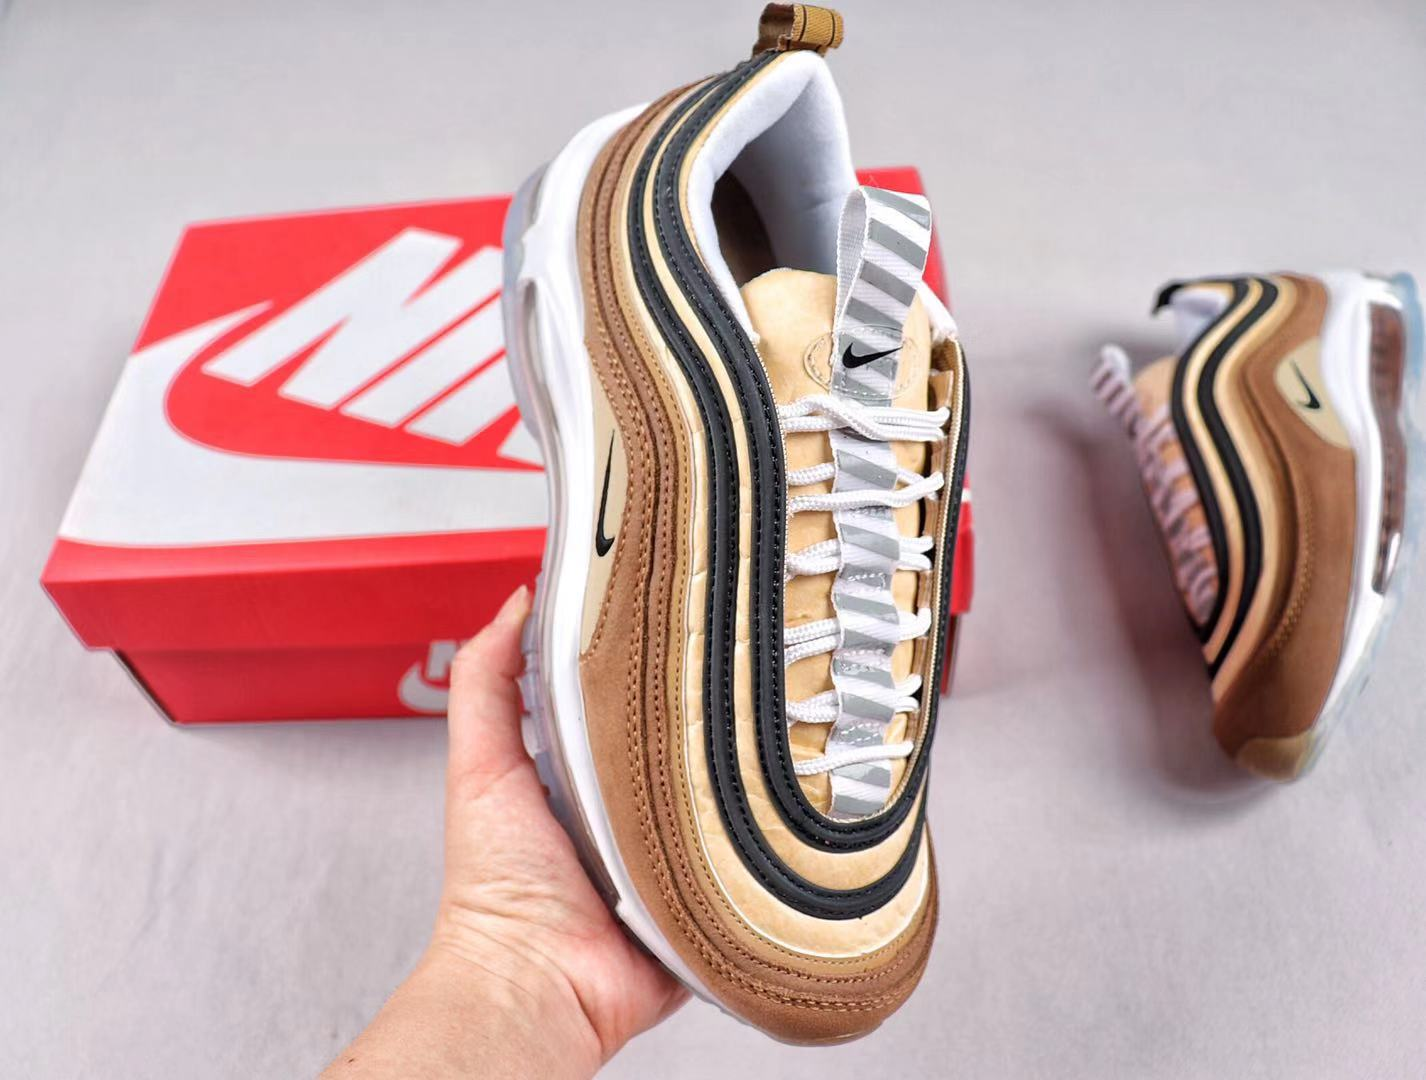 Nike Air Max 97 Ale Brown/Black-Elemental Gold Sneakers For Sale 921826-201